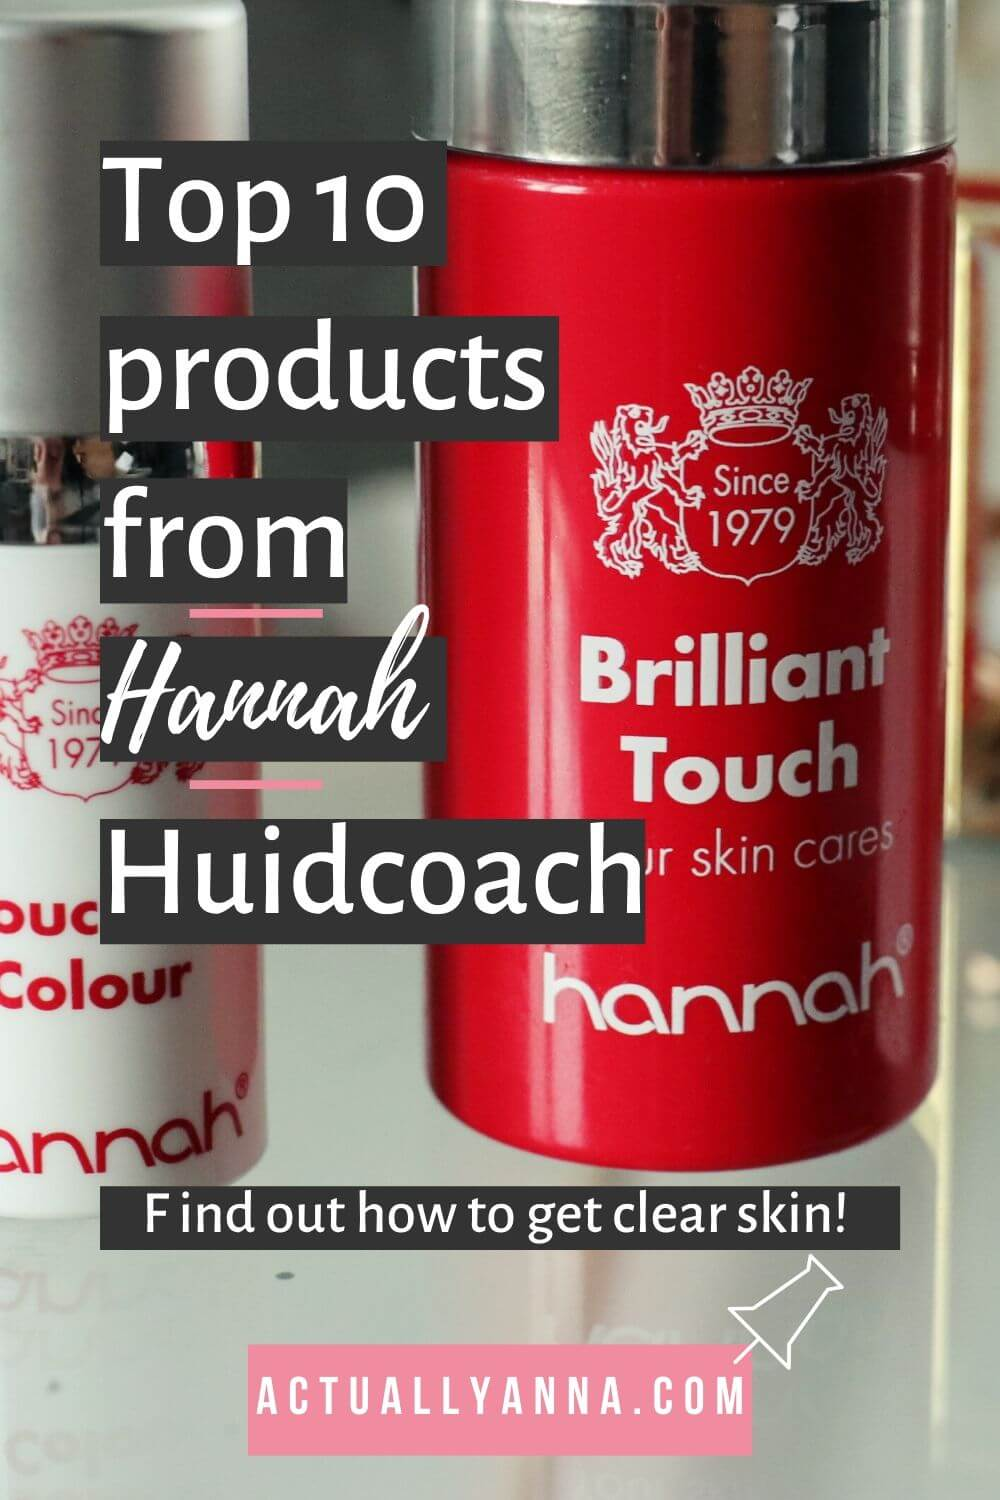 Do you want to read about my new skincare routines including the top 10 skincare products for clear skin? Evening routine and Morning routine it's all there! I found the best dry skin remedies, which are also suitable for sensitive skin. Find out how to get clear skin today with the Hannah Huidcoach Products! #skincare #dryskin #sensitiveskin #skincareroutine #clearskin